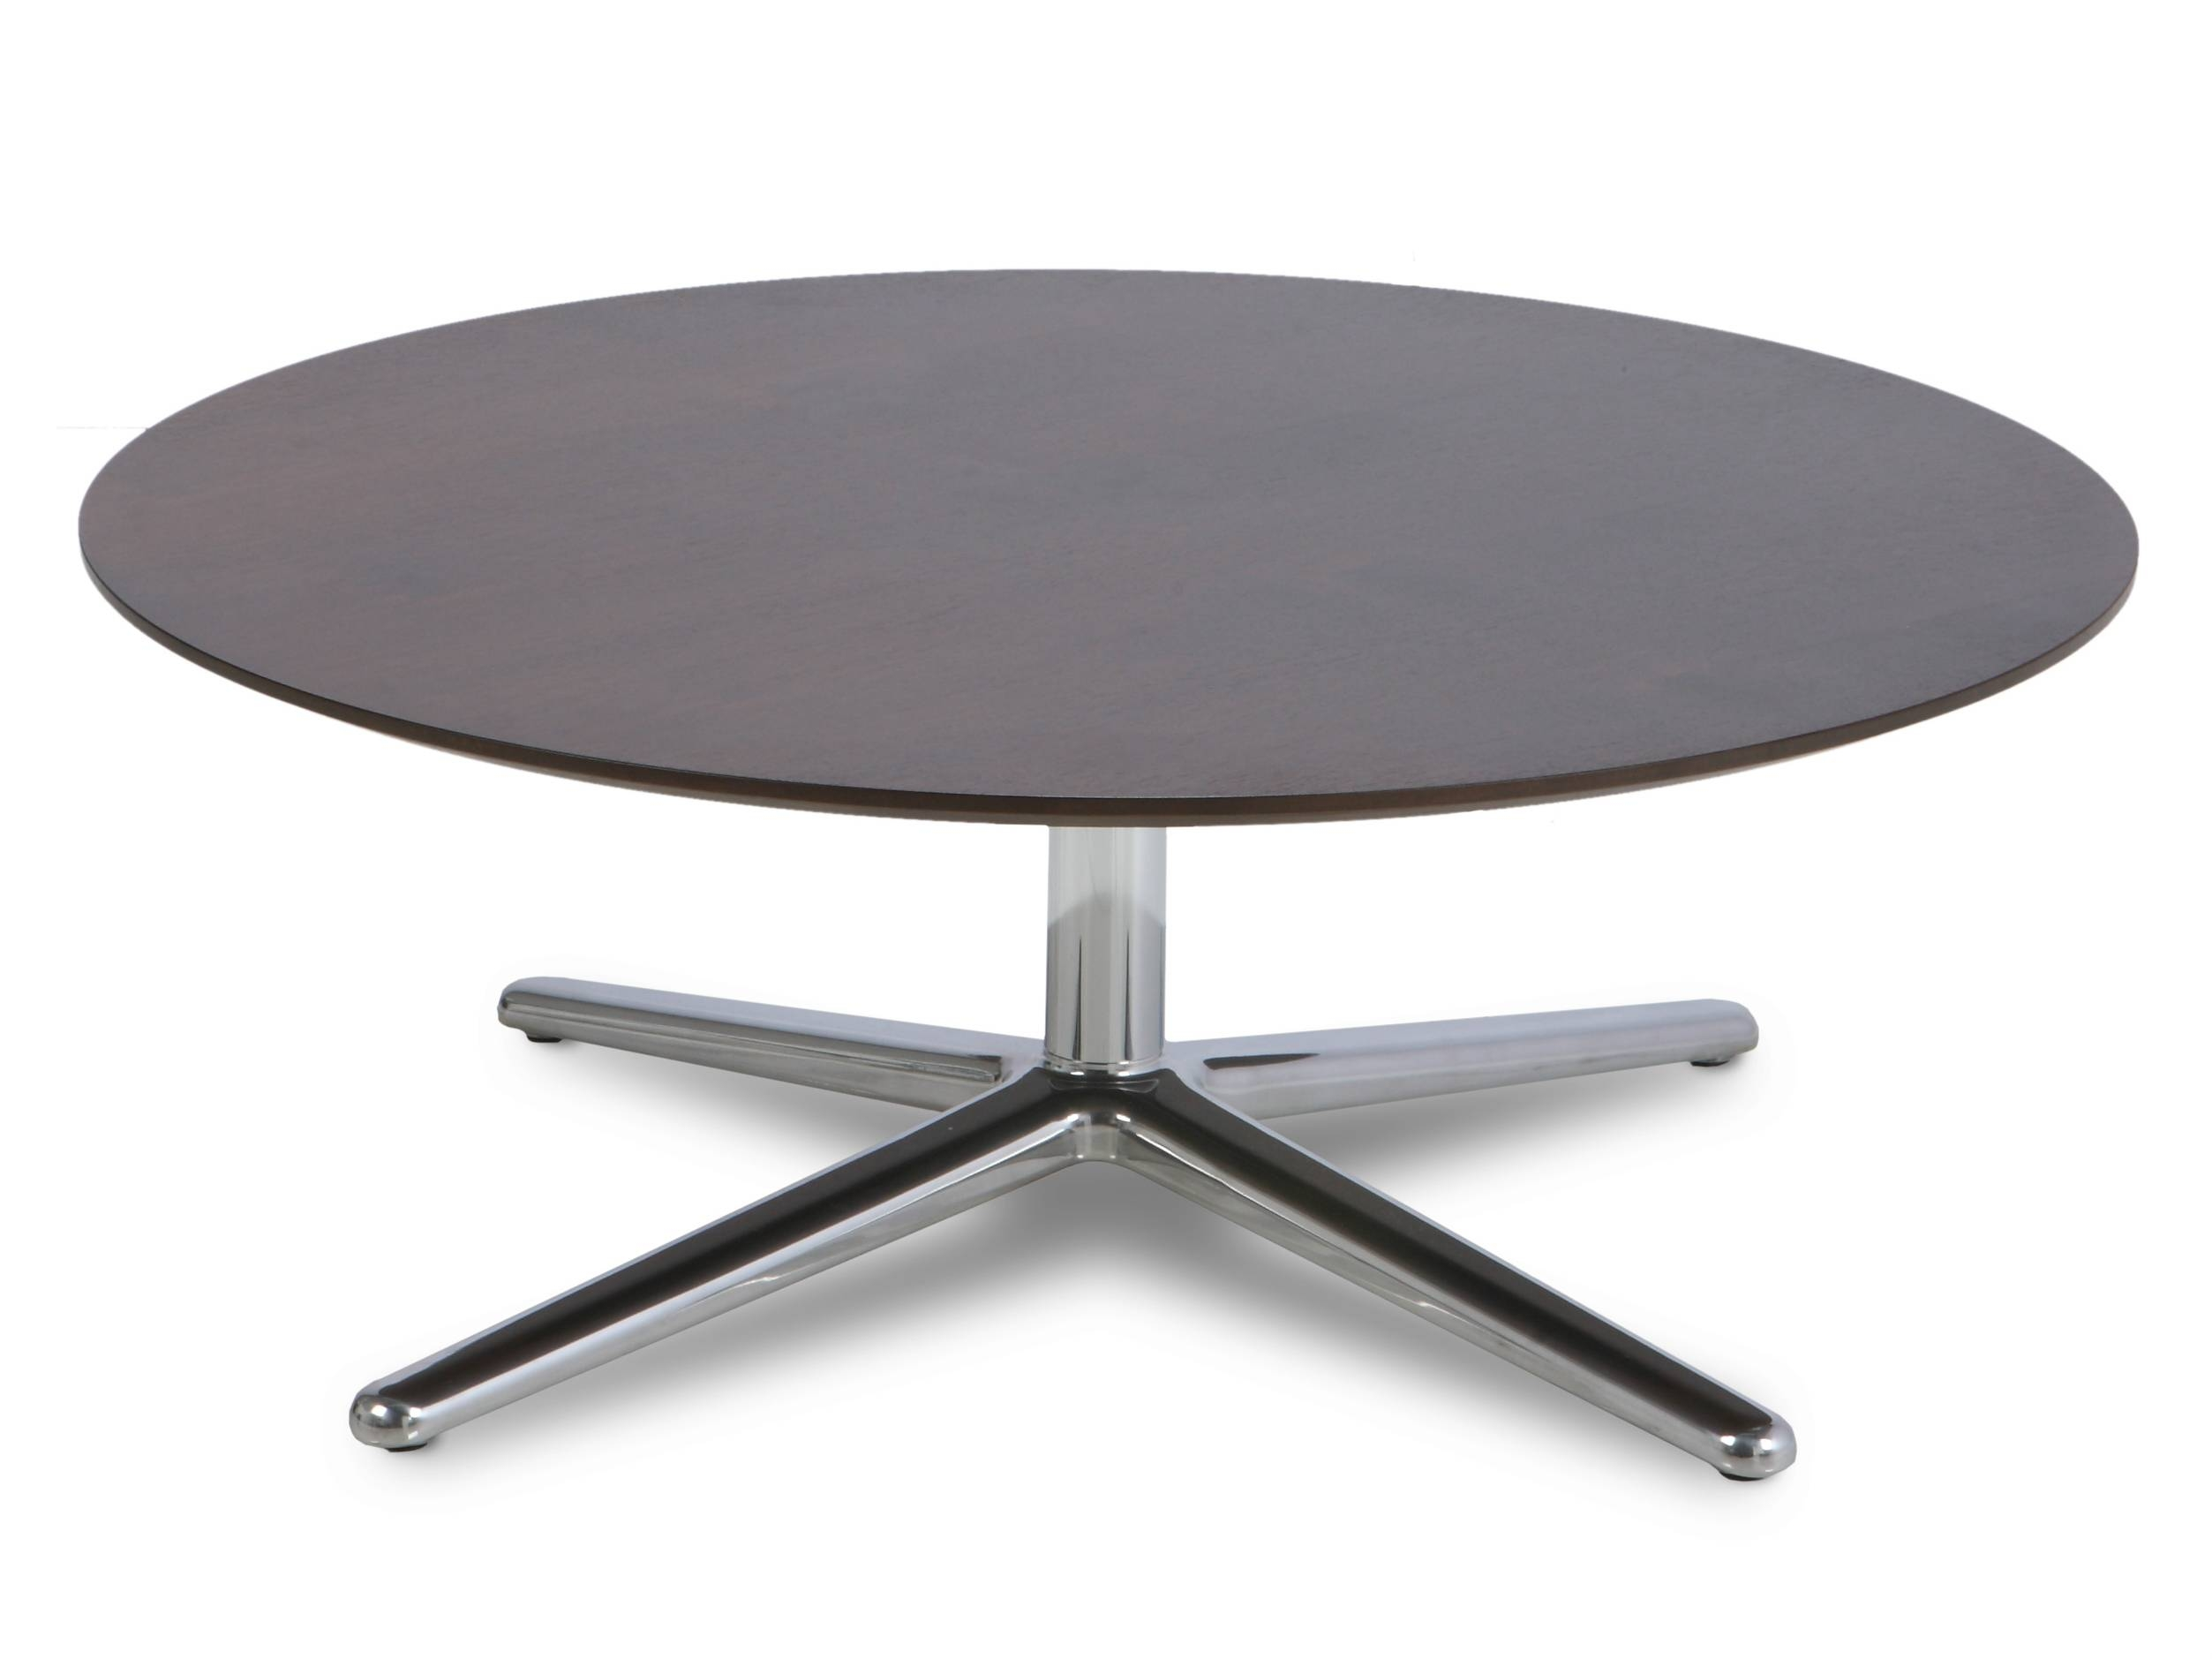 Round Black Glass And Chrome Coffee Table | Coffee Tables Decoration with regard to Chrome Coffee Table Bases (Image 28 of 30)